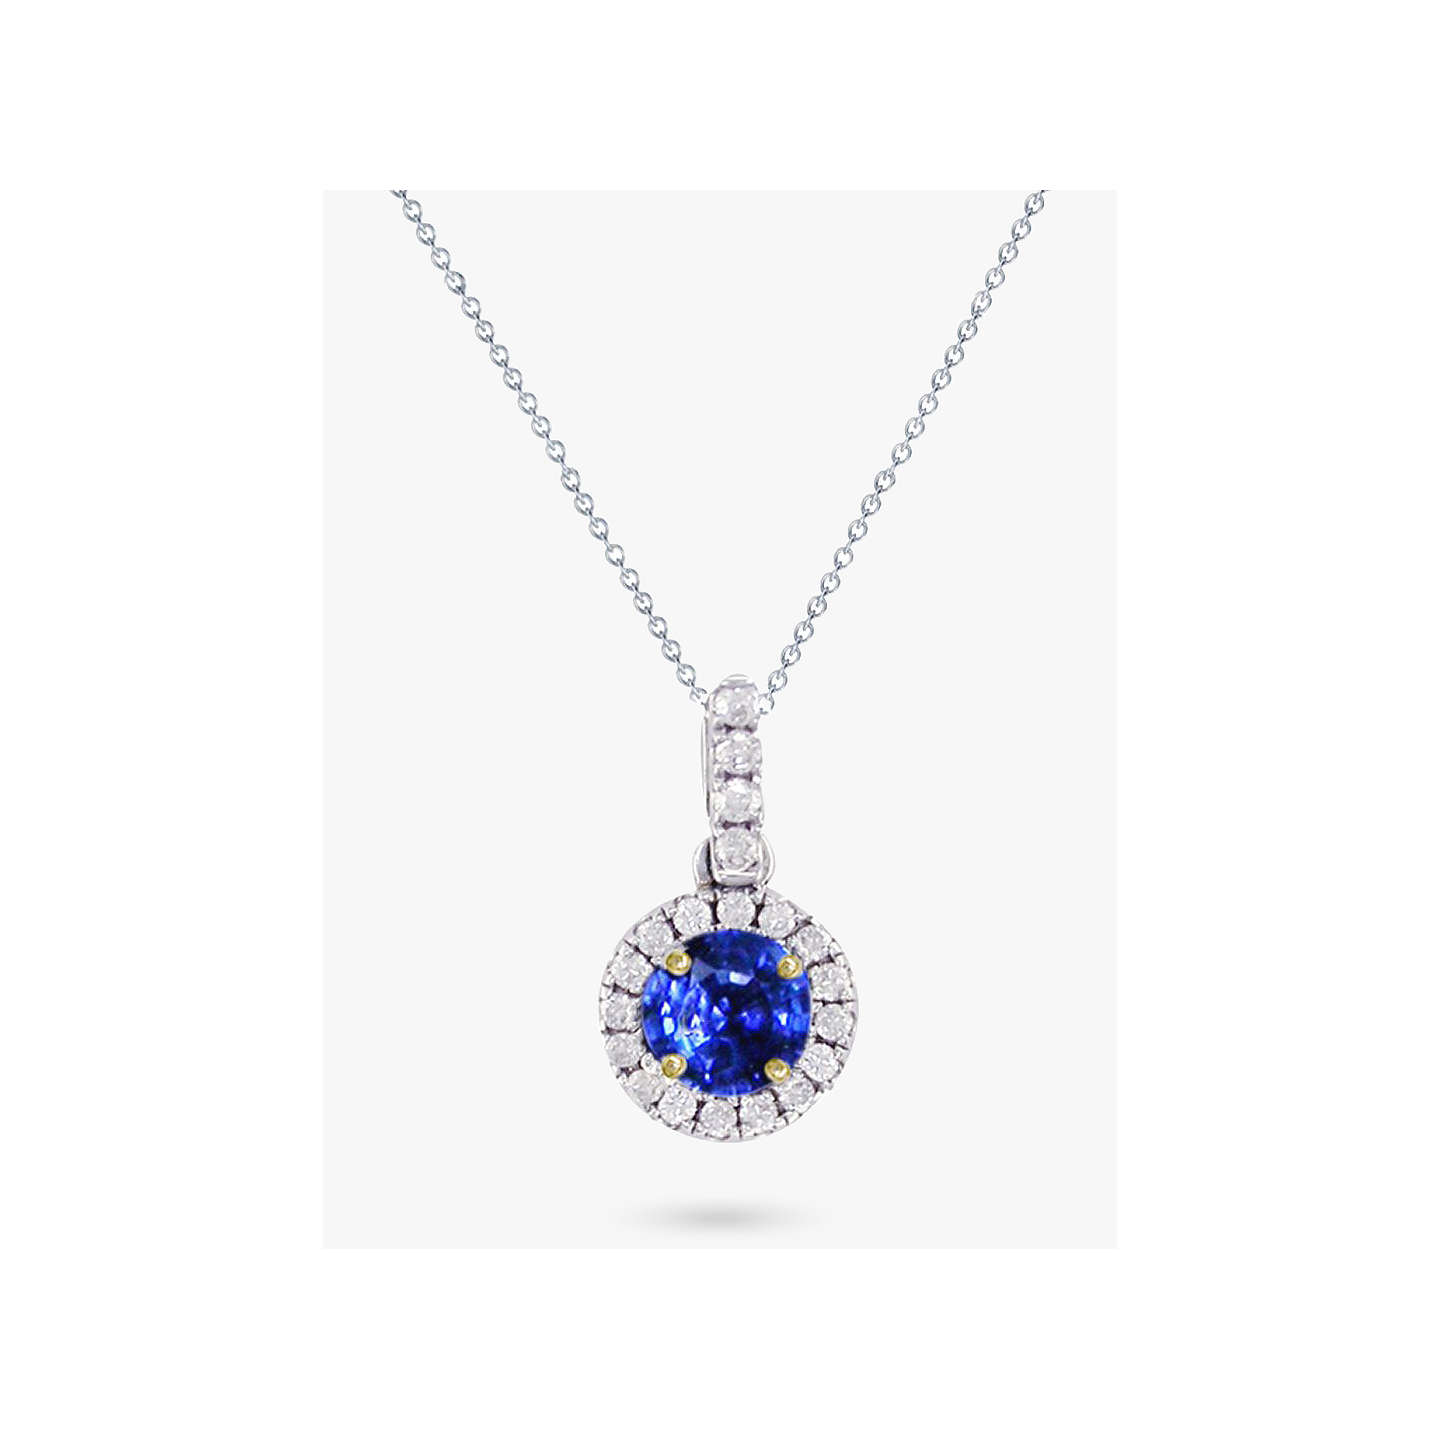 Ewa 18ct white gold diamond and sapphire cluster pendant necklace at buyewa 18ct white gold diamond and sapphire cluster pendant necklace online at johnlewis aloadofball Image collections